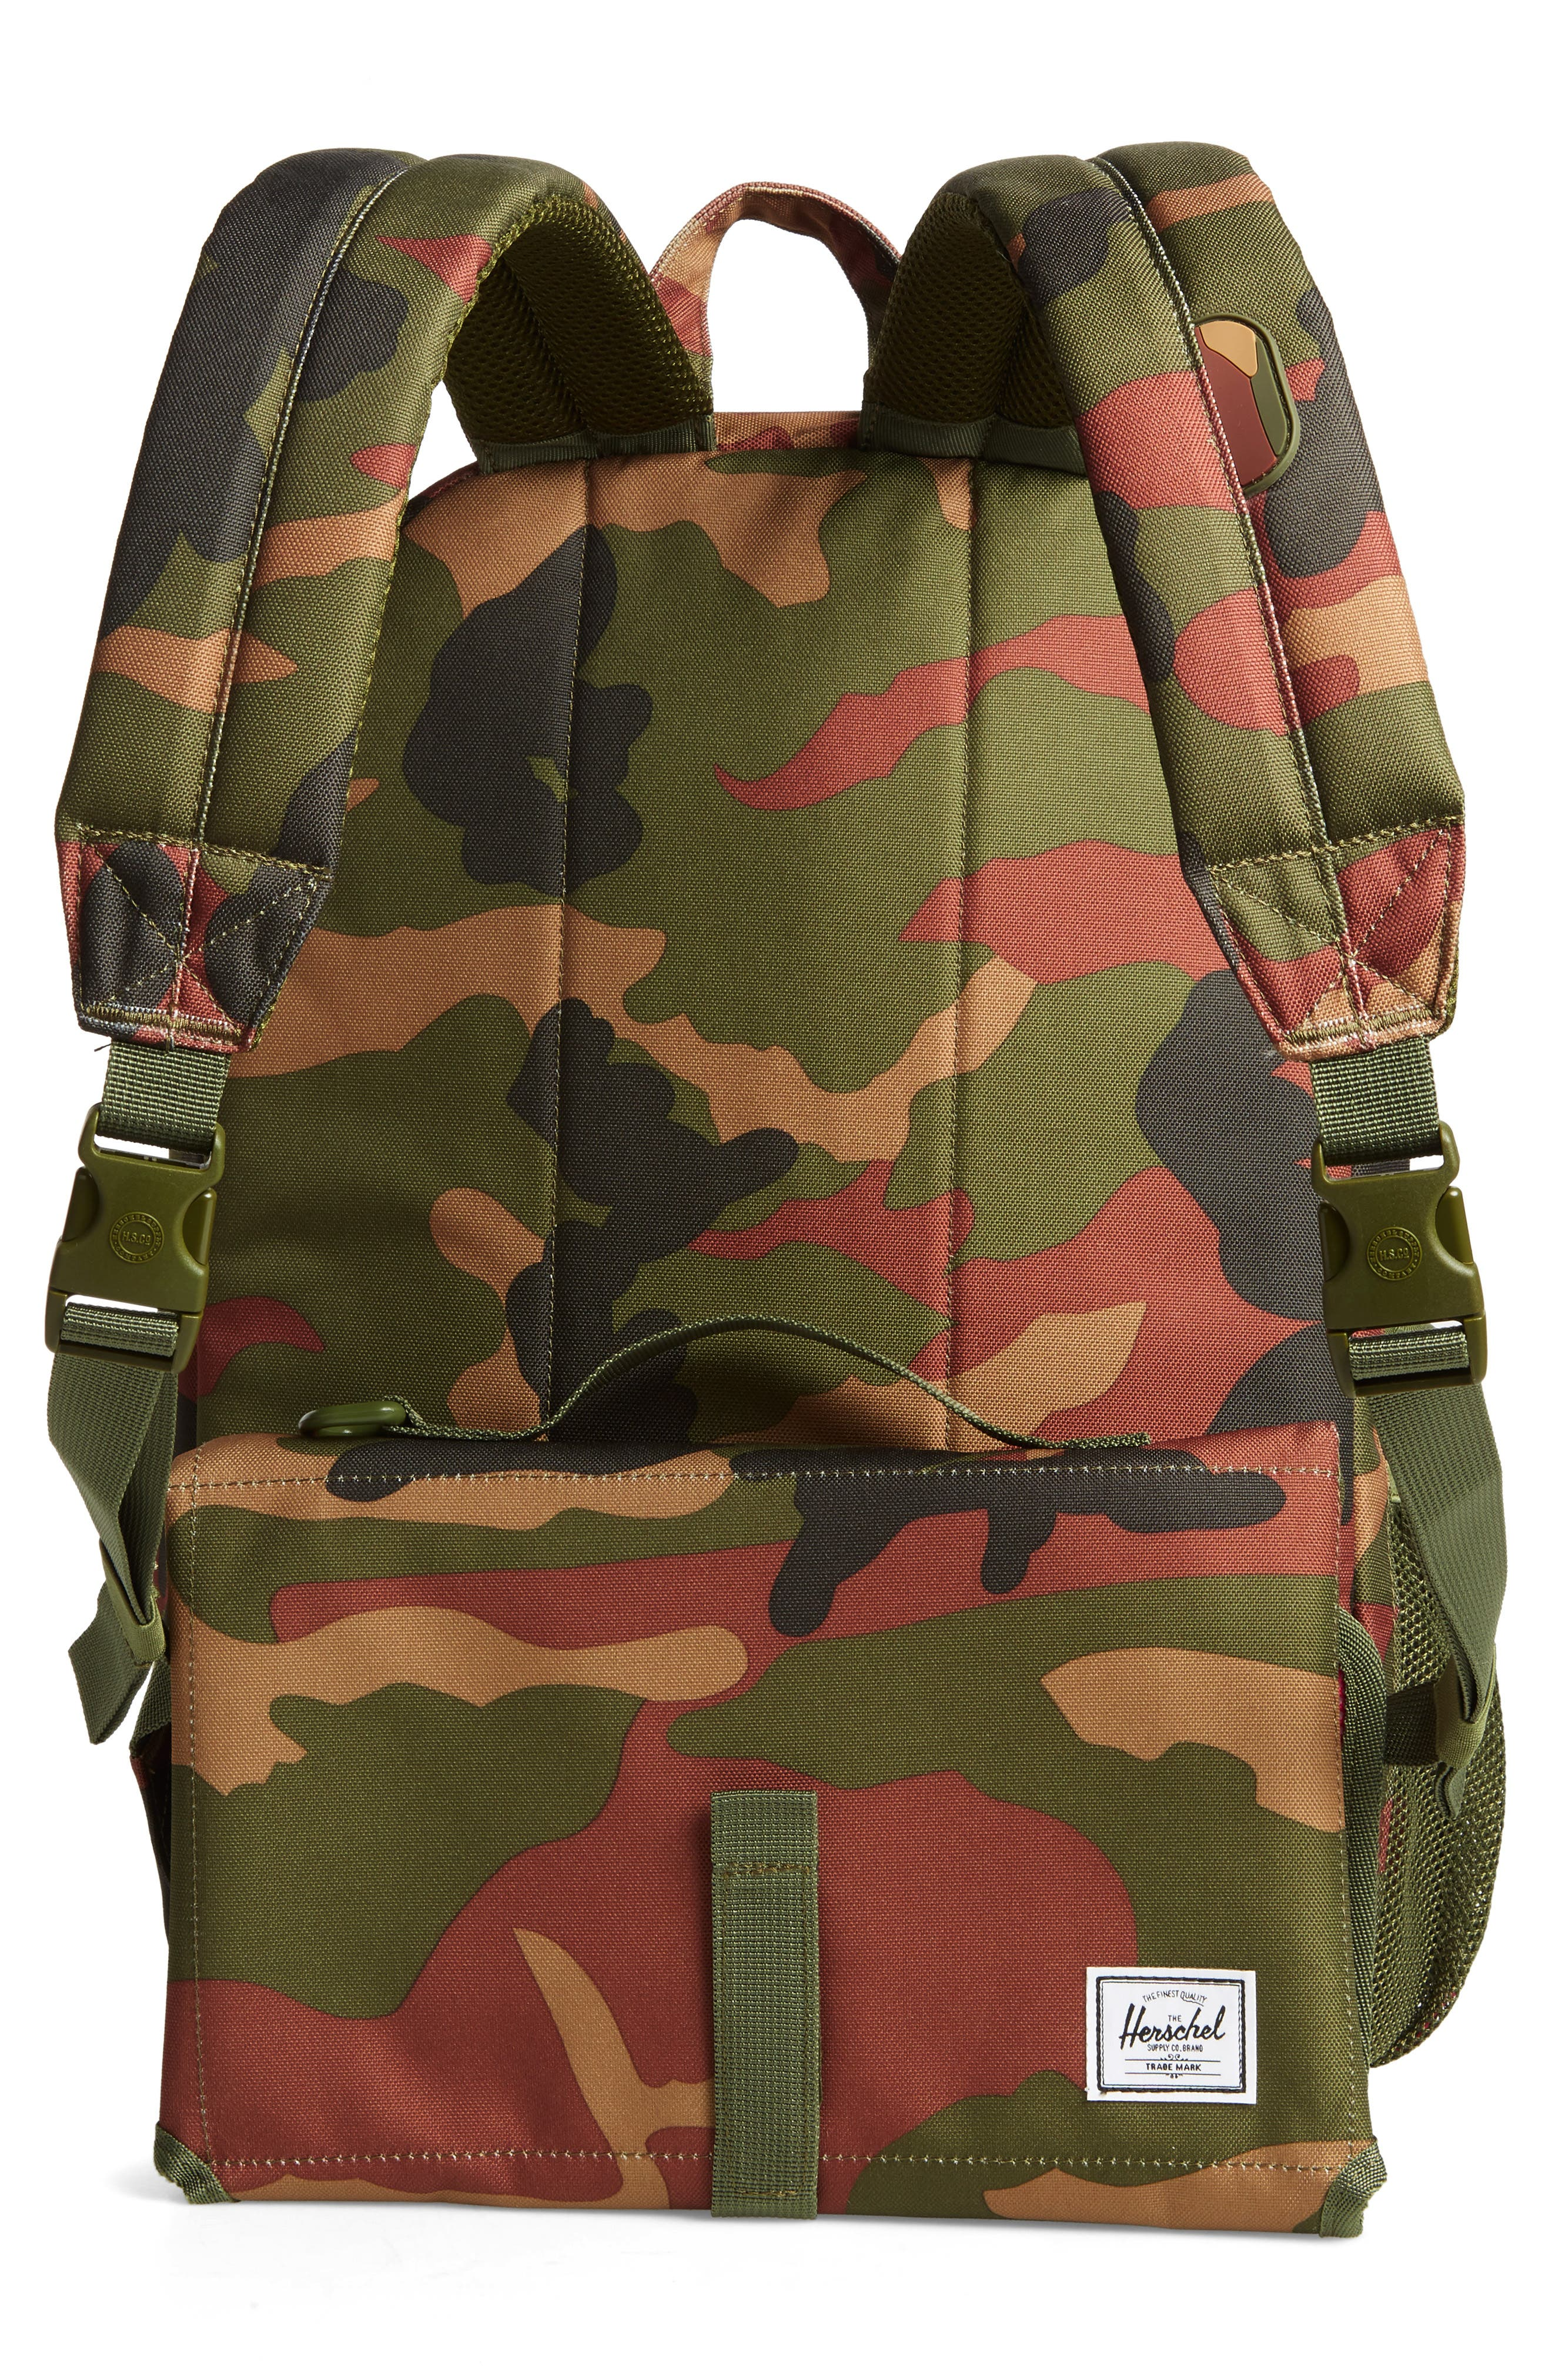 HERSCHEL SUPPLY CO.,                             Settlement Sprout Diaper Backpack,                             Alternate thumbnail 3, color,                             340